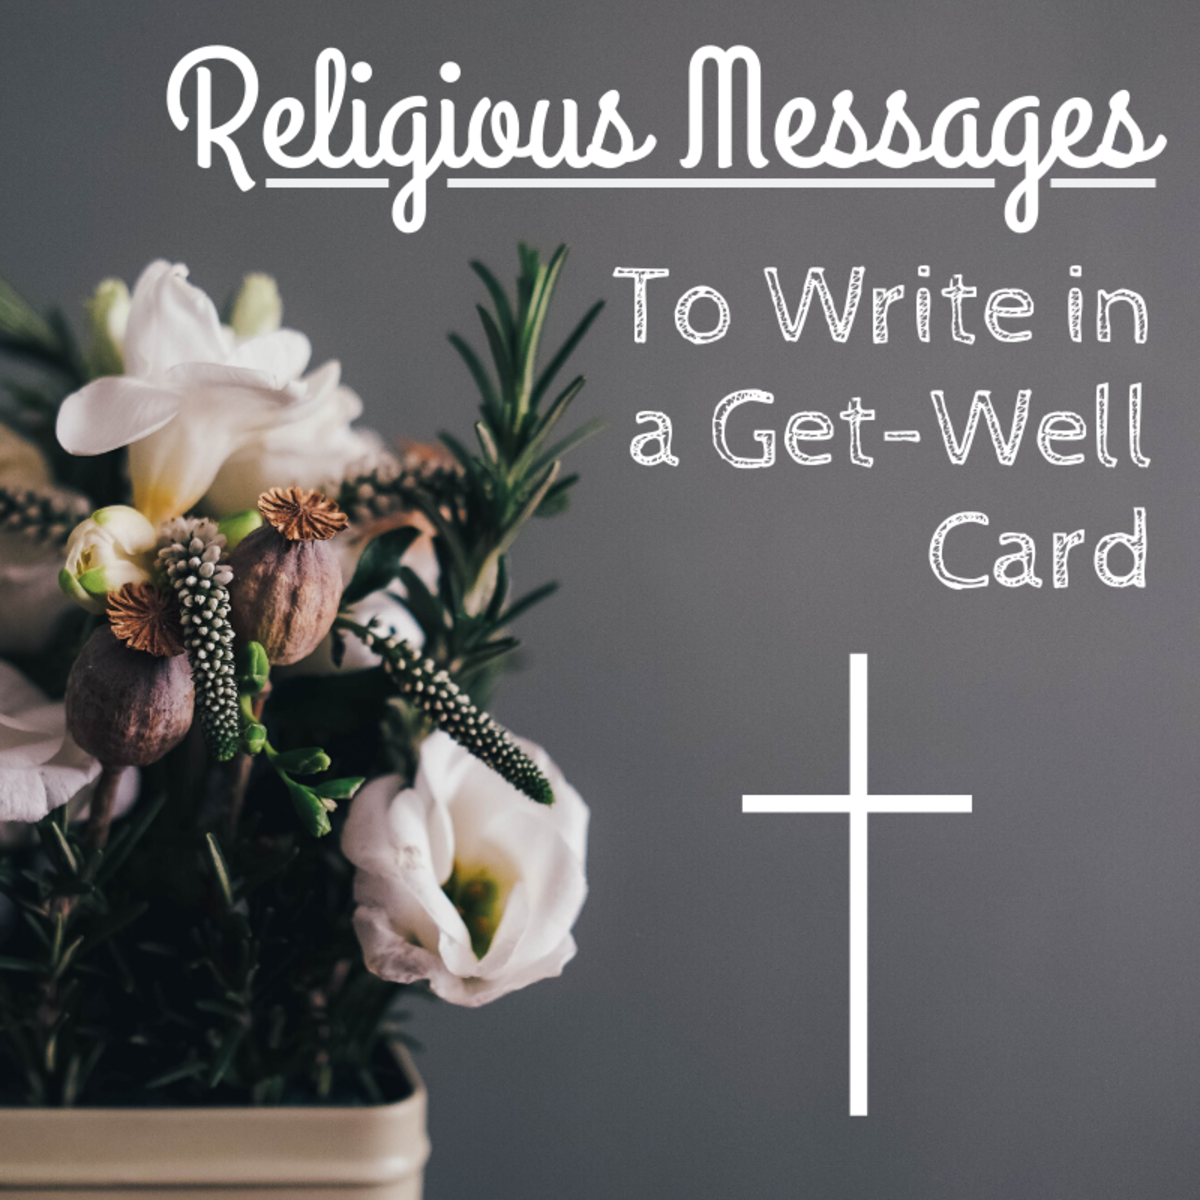 Consider sending one or more of these thoughtful messages to a friend or family member who isn't feeling well.